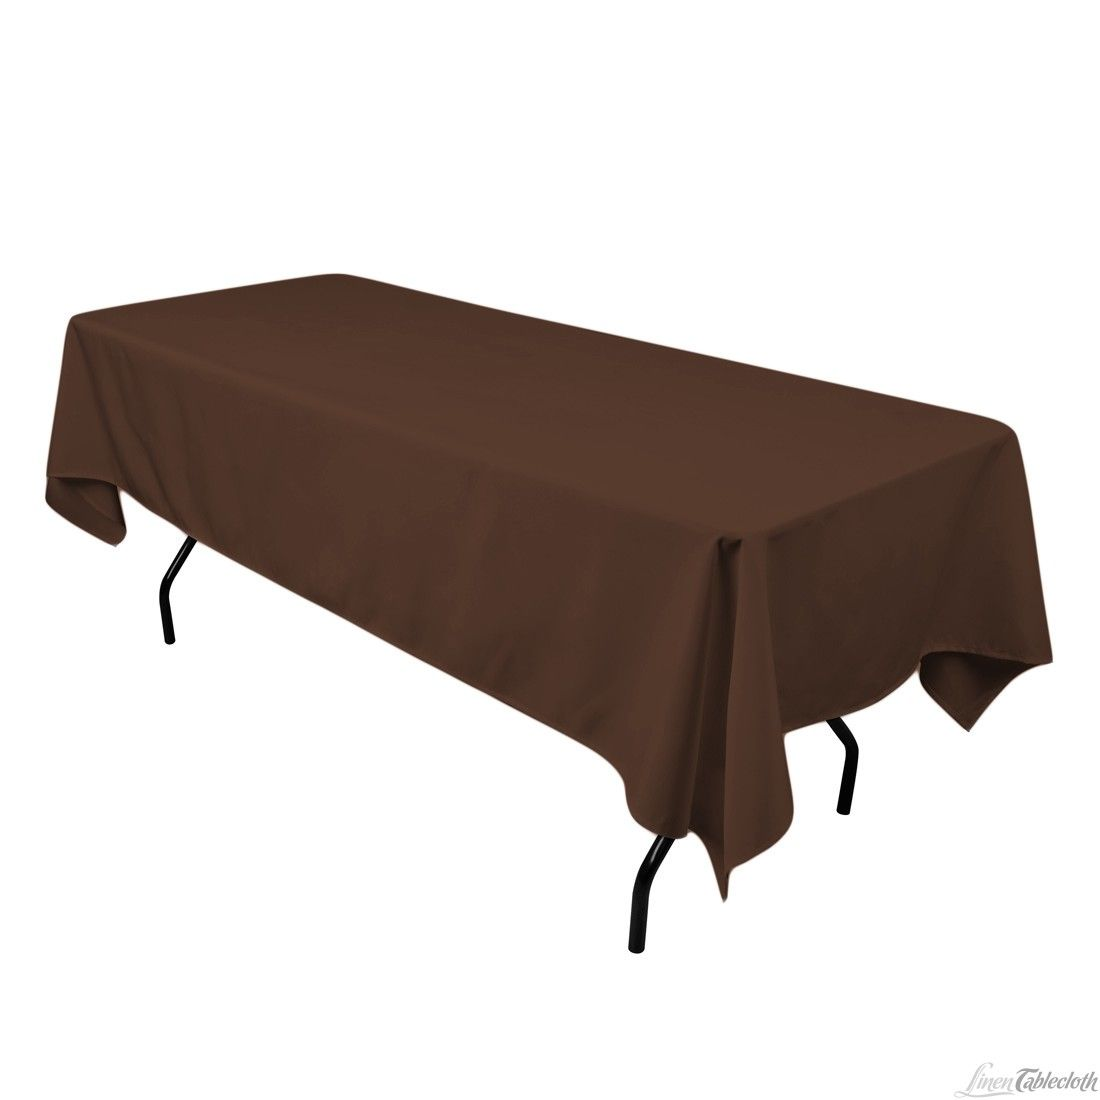 60 In By 102 In Rectangular Tablecloth On 6 Ft Rectangular